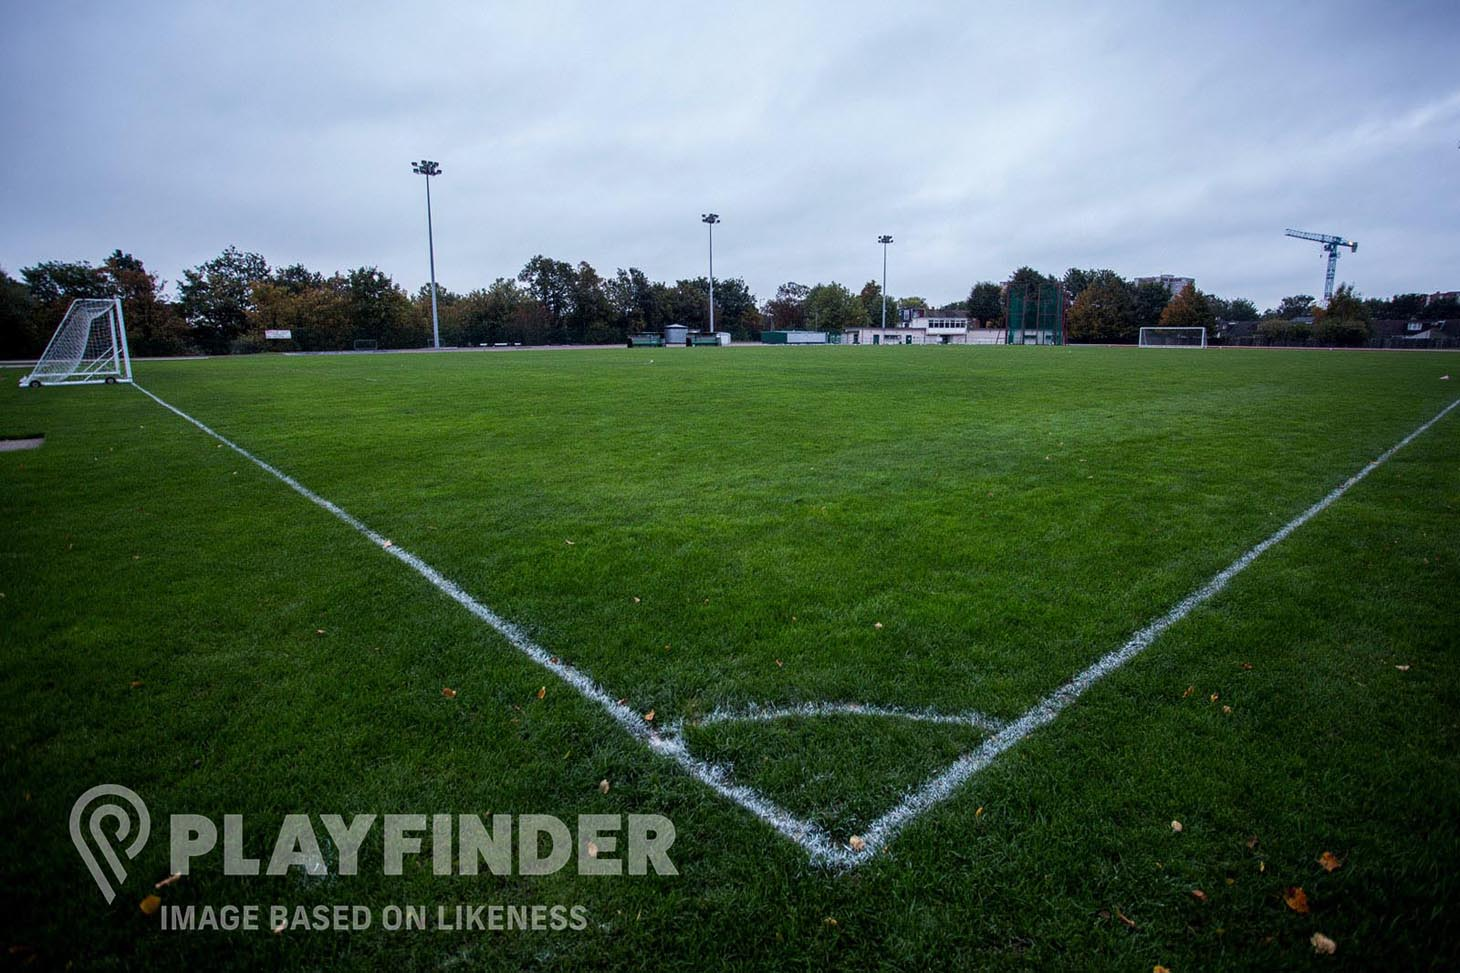 Didsbury Sports Ground 11 a side | Grass football pitch